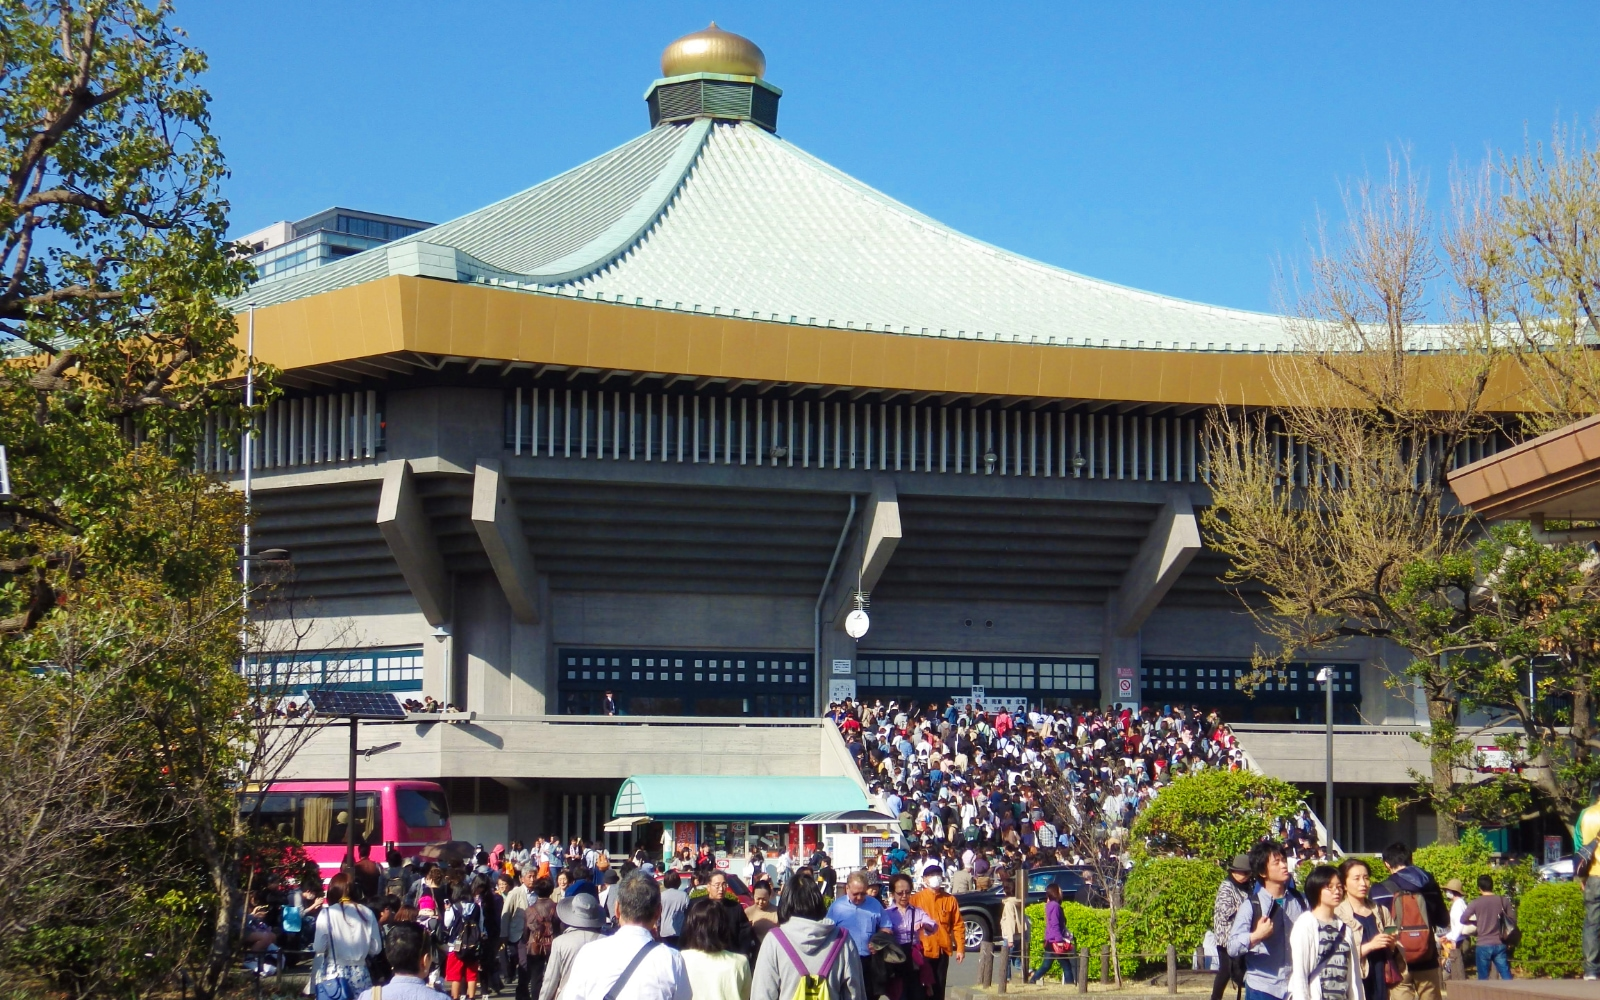 People lining up outside the Budokan arena for an event.